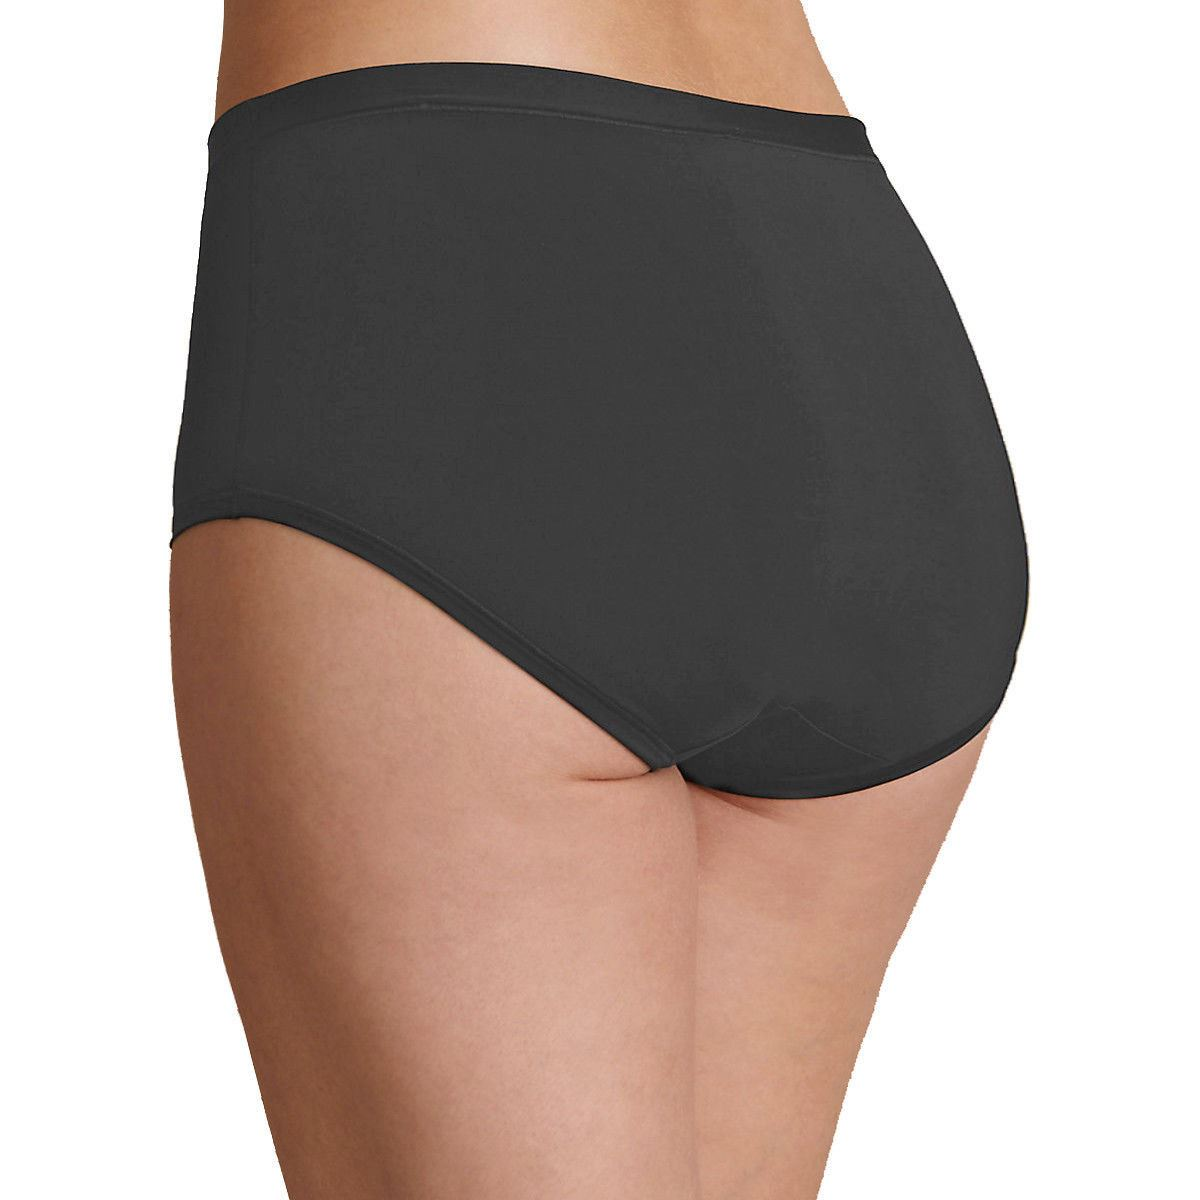 EX-M-amp-S-Ultimate-Comfort-Flexifit-4-Way-Stretch-Midi-Knickers-in-White thumbnail 5